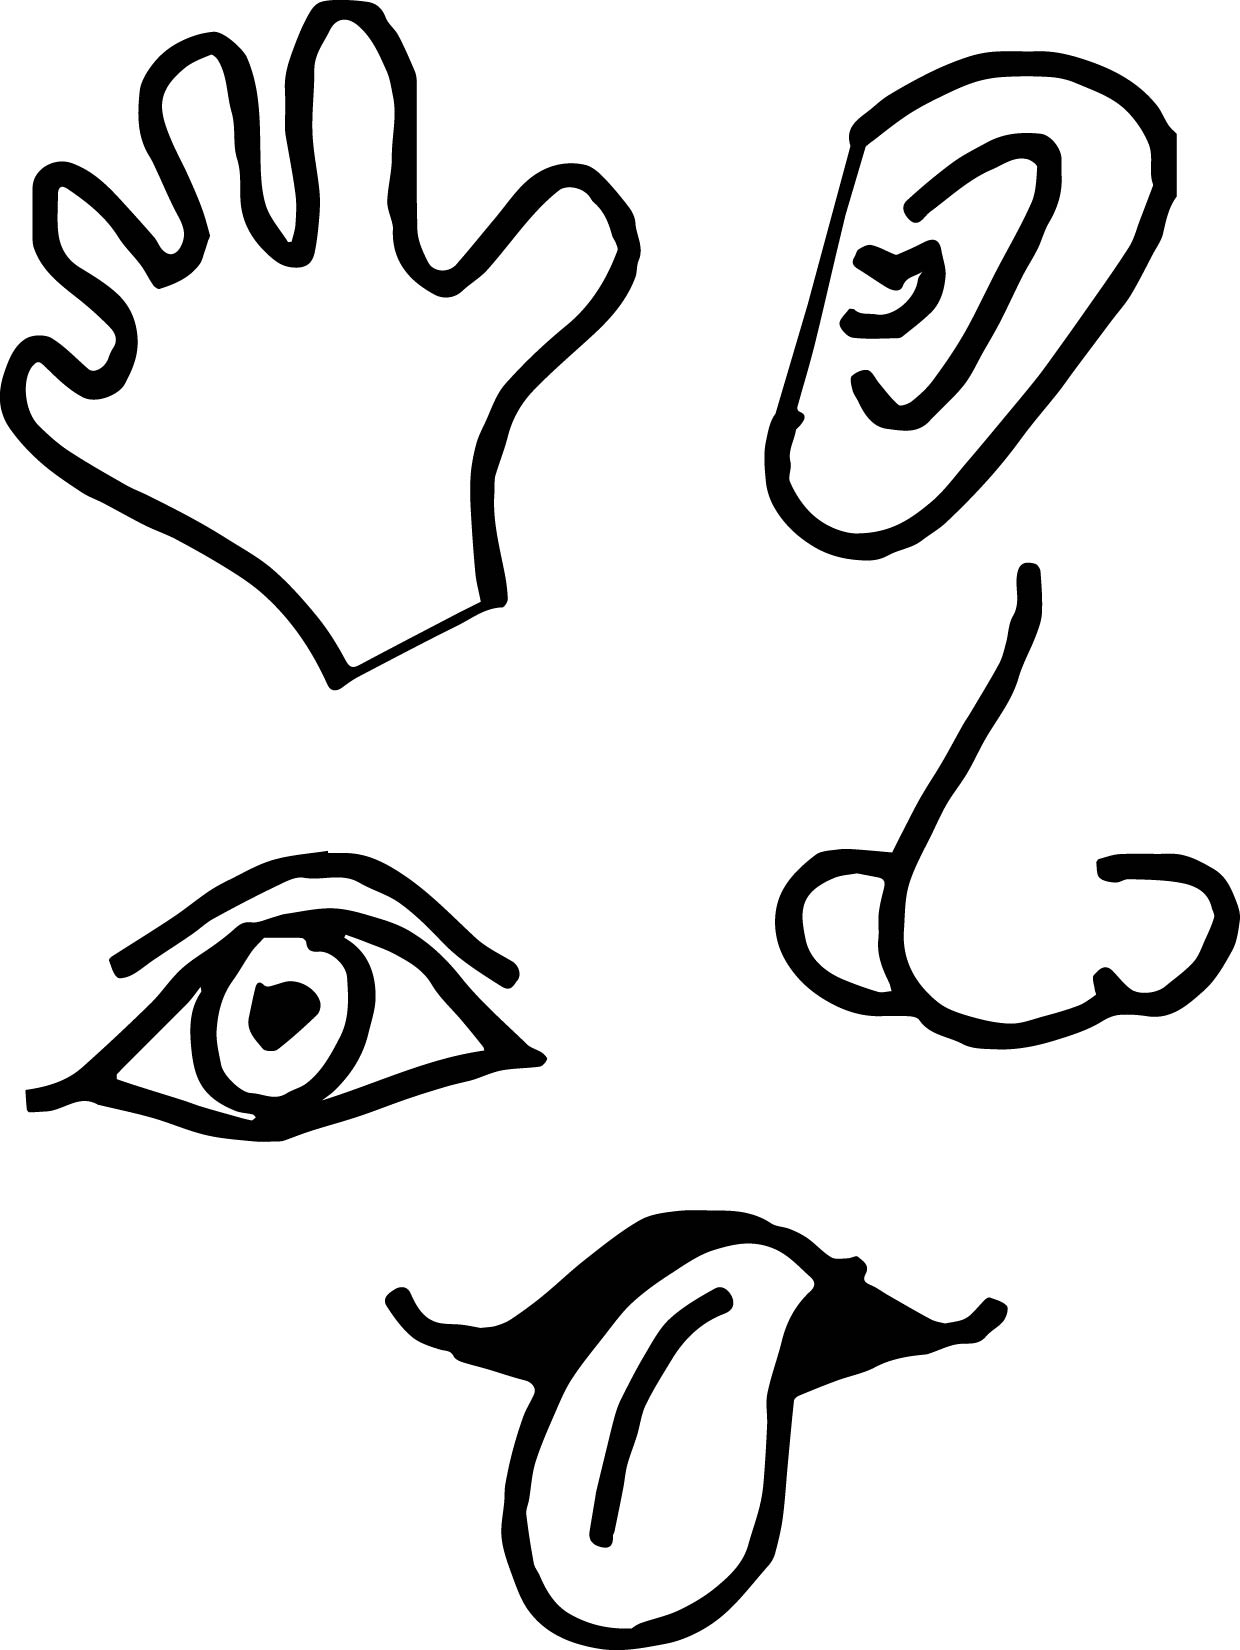 5 senses picture coloring page wecoloringpage for Five senses coloring pages